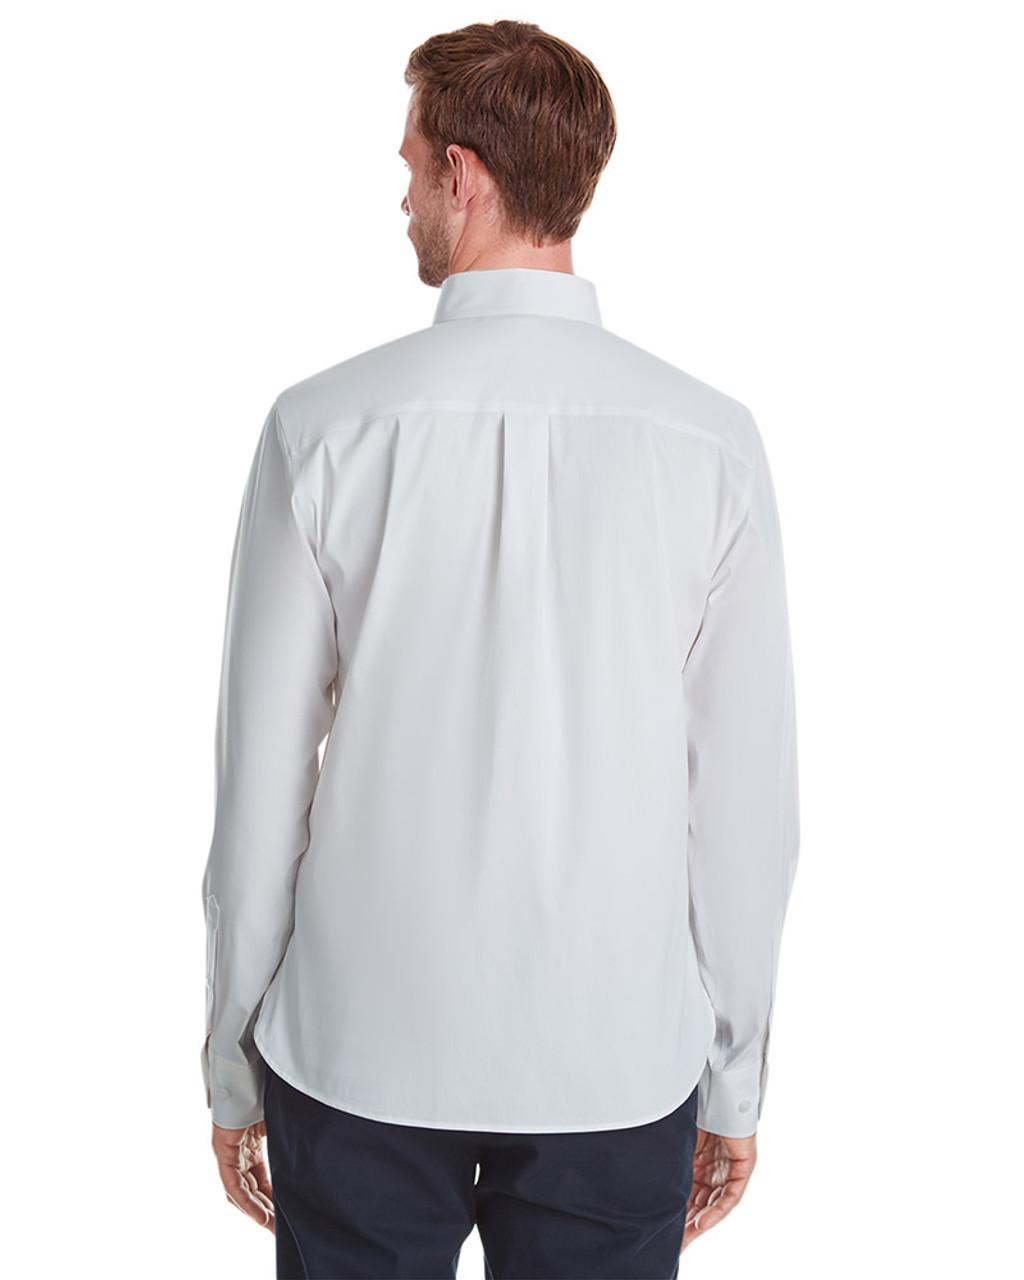 White - back, DG561 Devon & Jones Men's Crown Collection™ Stretch Broadcloth Untucked Shirt | Blankclothing.ca